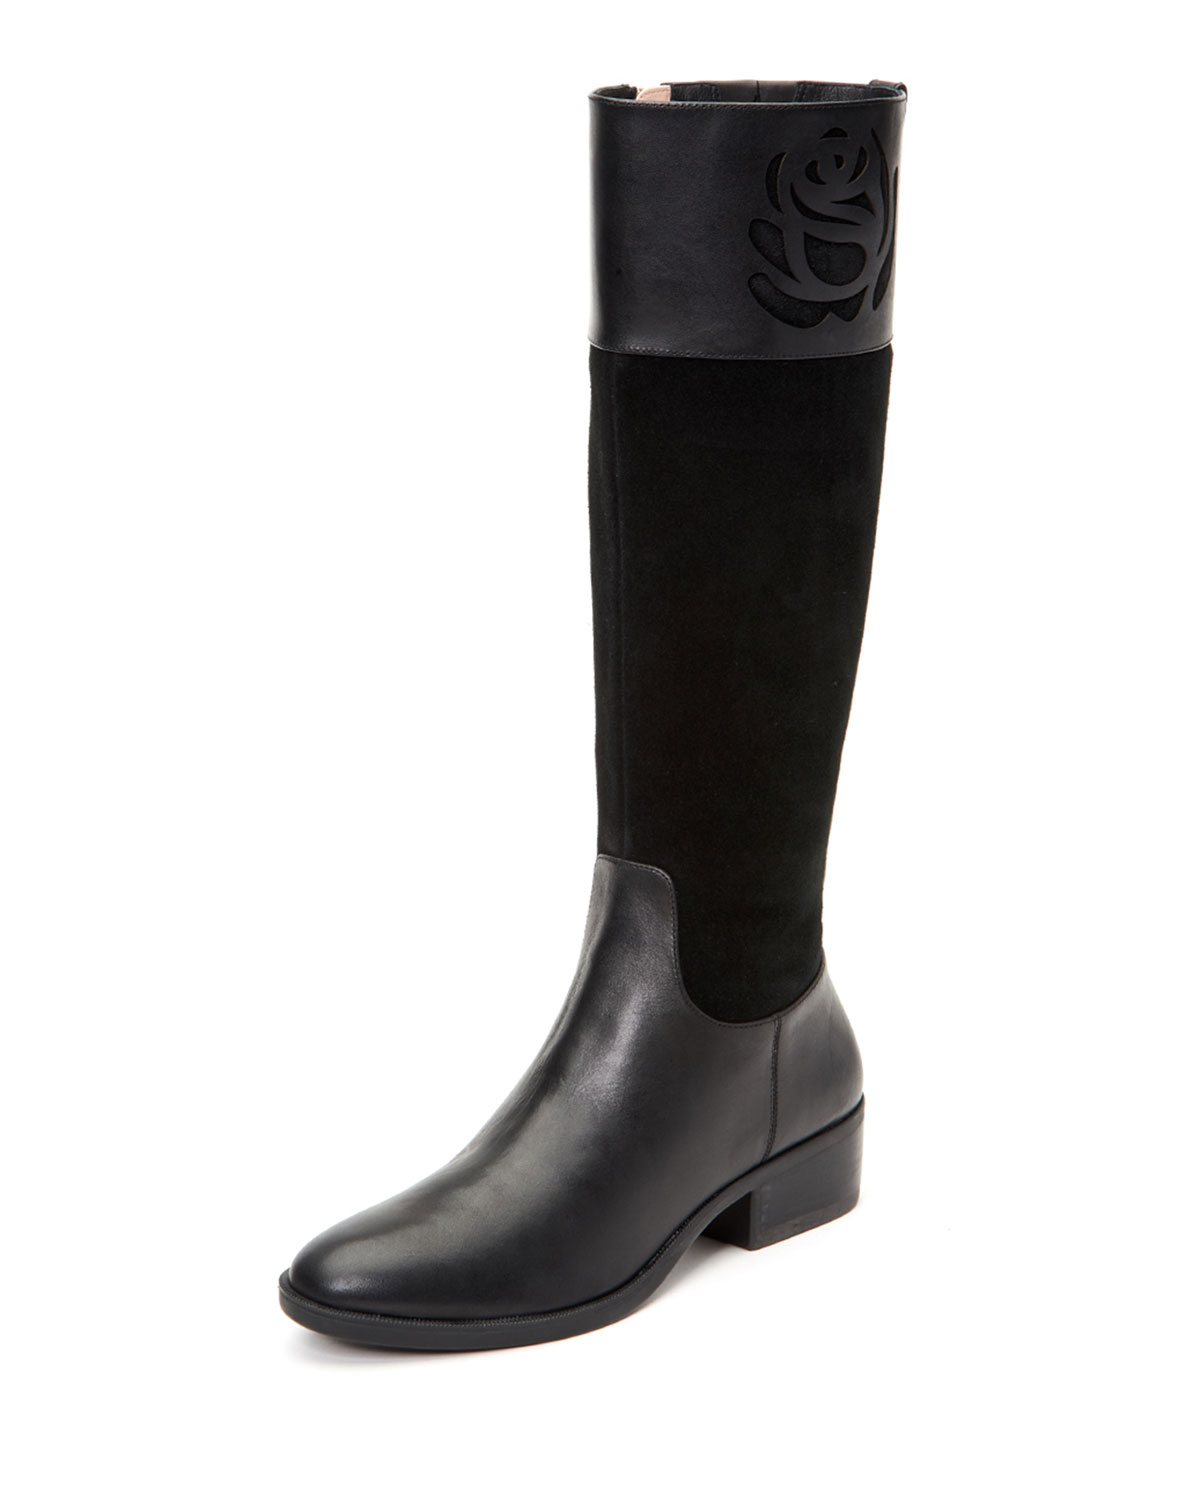 TARYN ROSE GEORGIA TALL LEATHER/SUEDE RIDING BOOTS